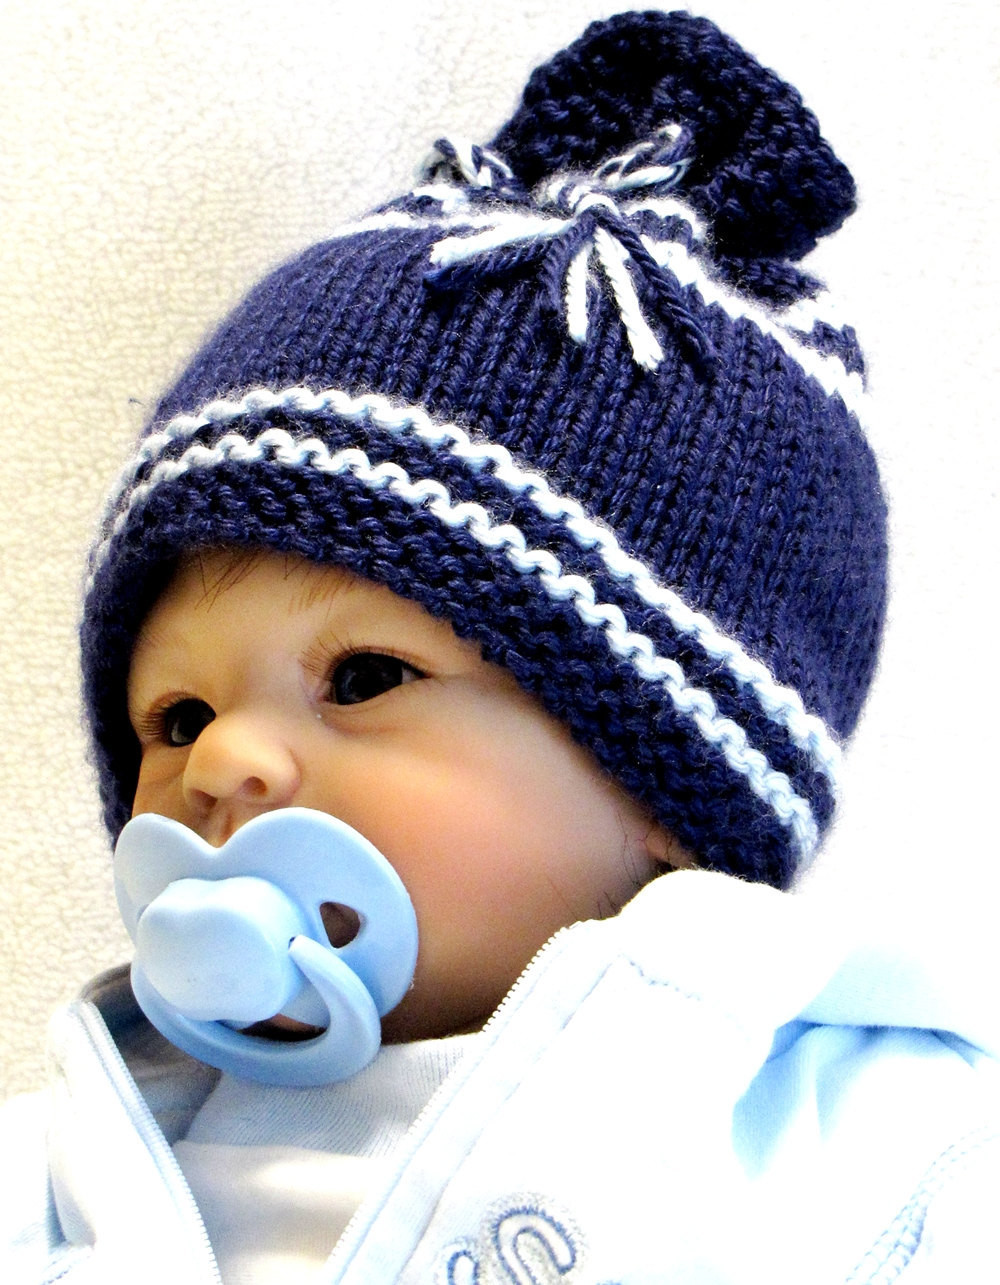 Knitted Baby Hats Luxury Knitting Pattern Newborn Ez Knit Baby Hat Pattern Great Of Awesome 41 Images Knitted Baby Hats